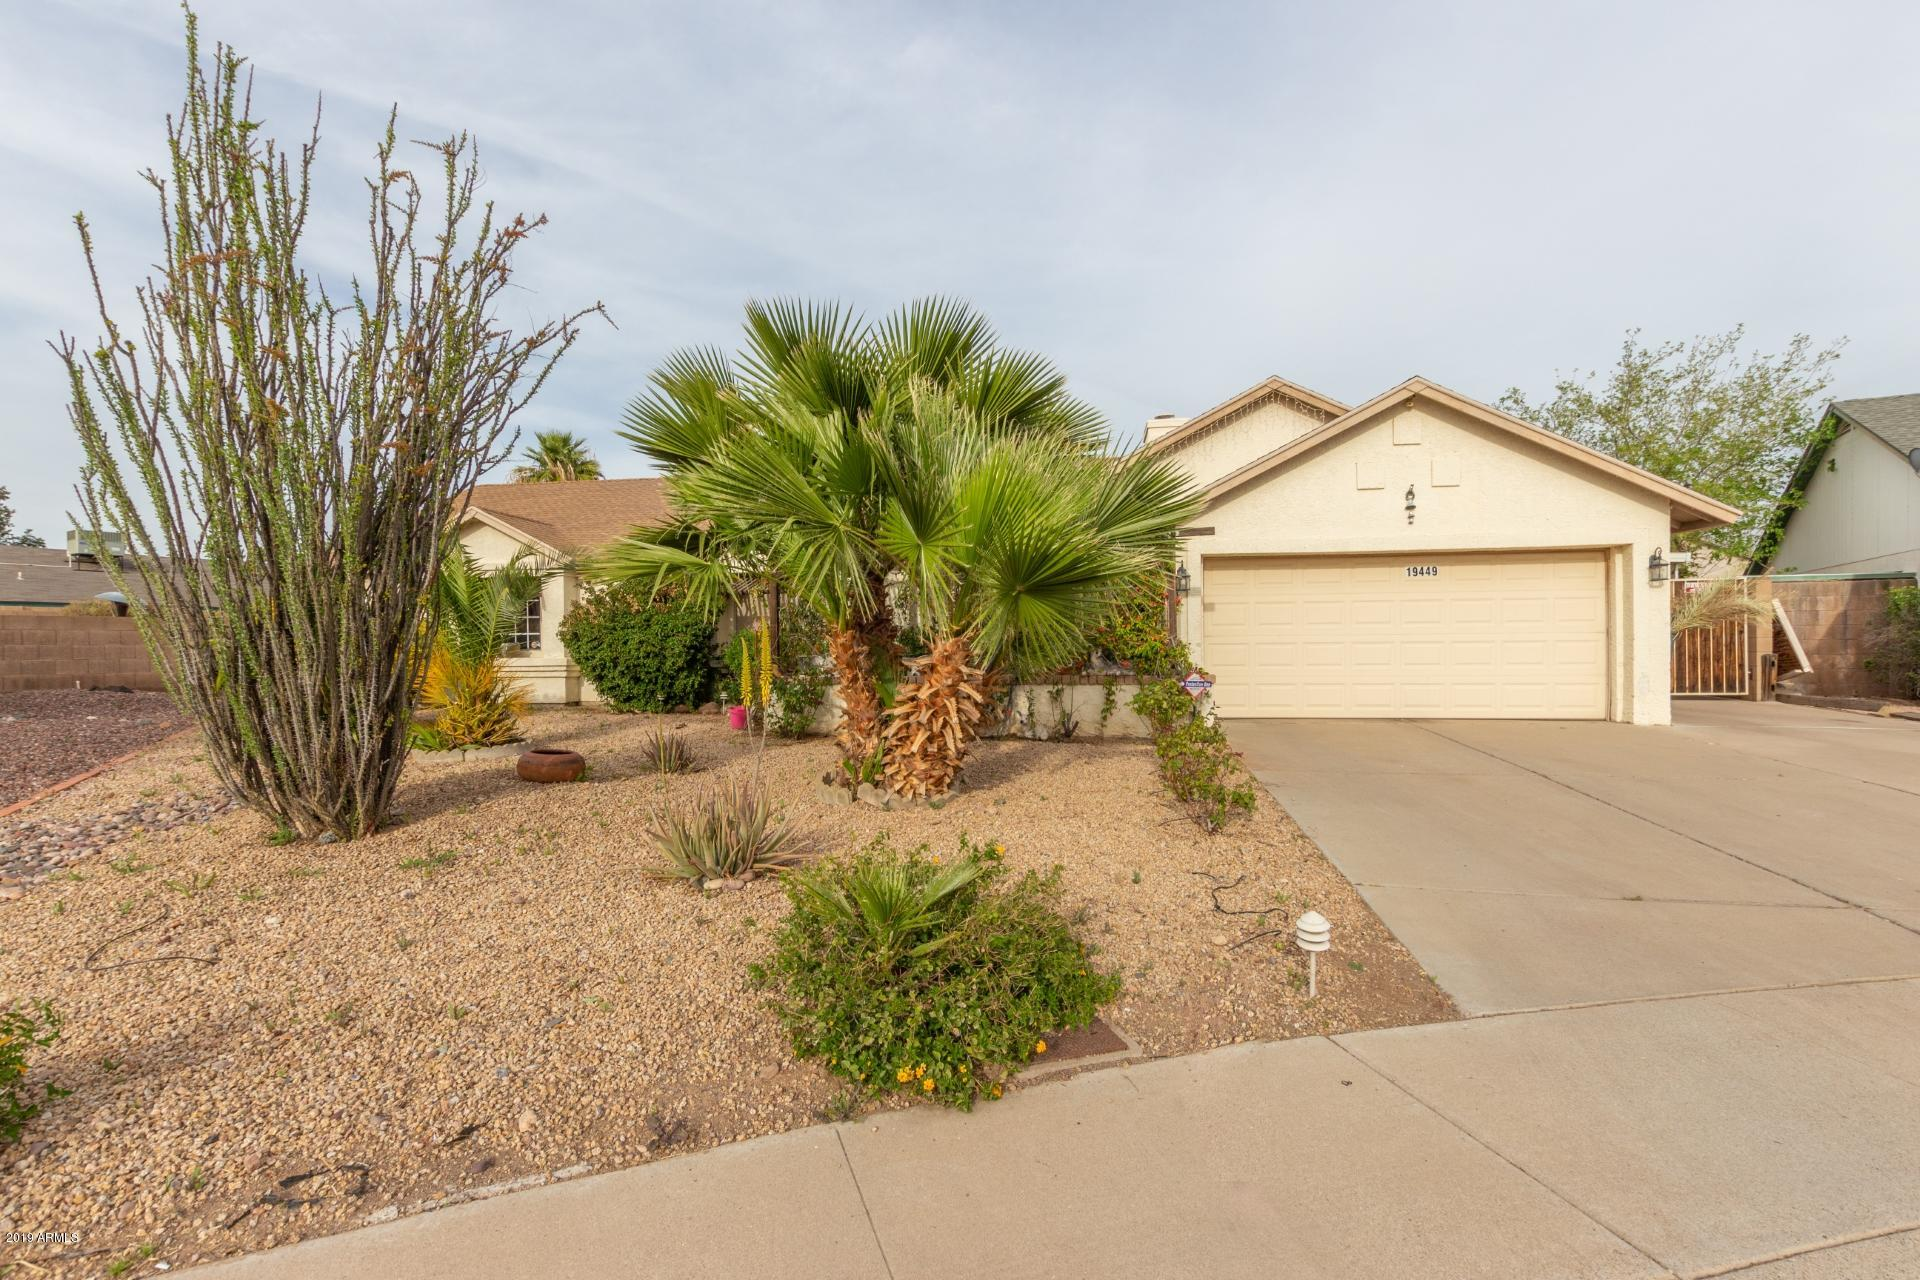 19449 N 8TH Avenue, Deer Valley, Arizona